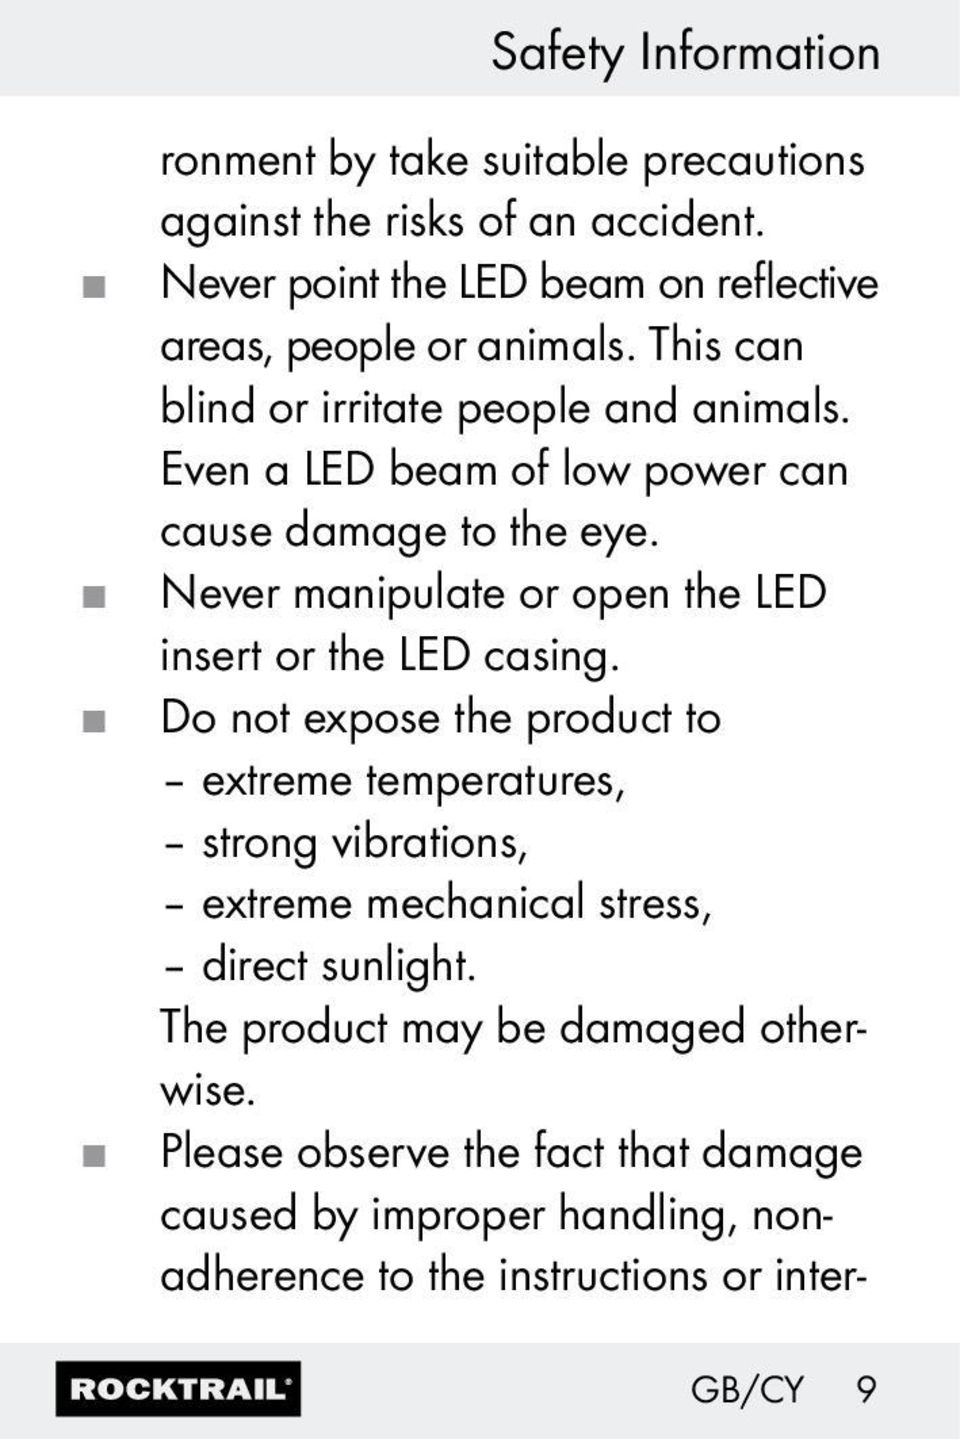 Even a LED beam of low power can cause damage to the eye. Never manipulate or open the LED insert or the LED casing.